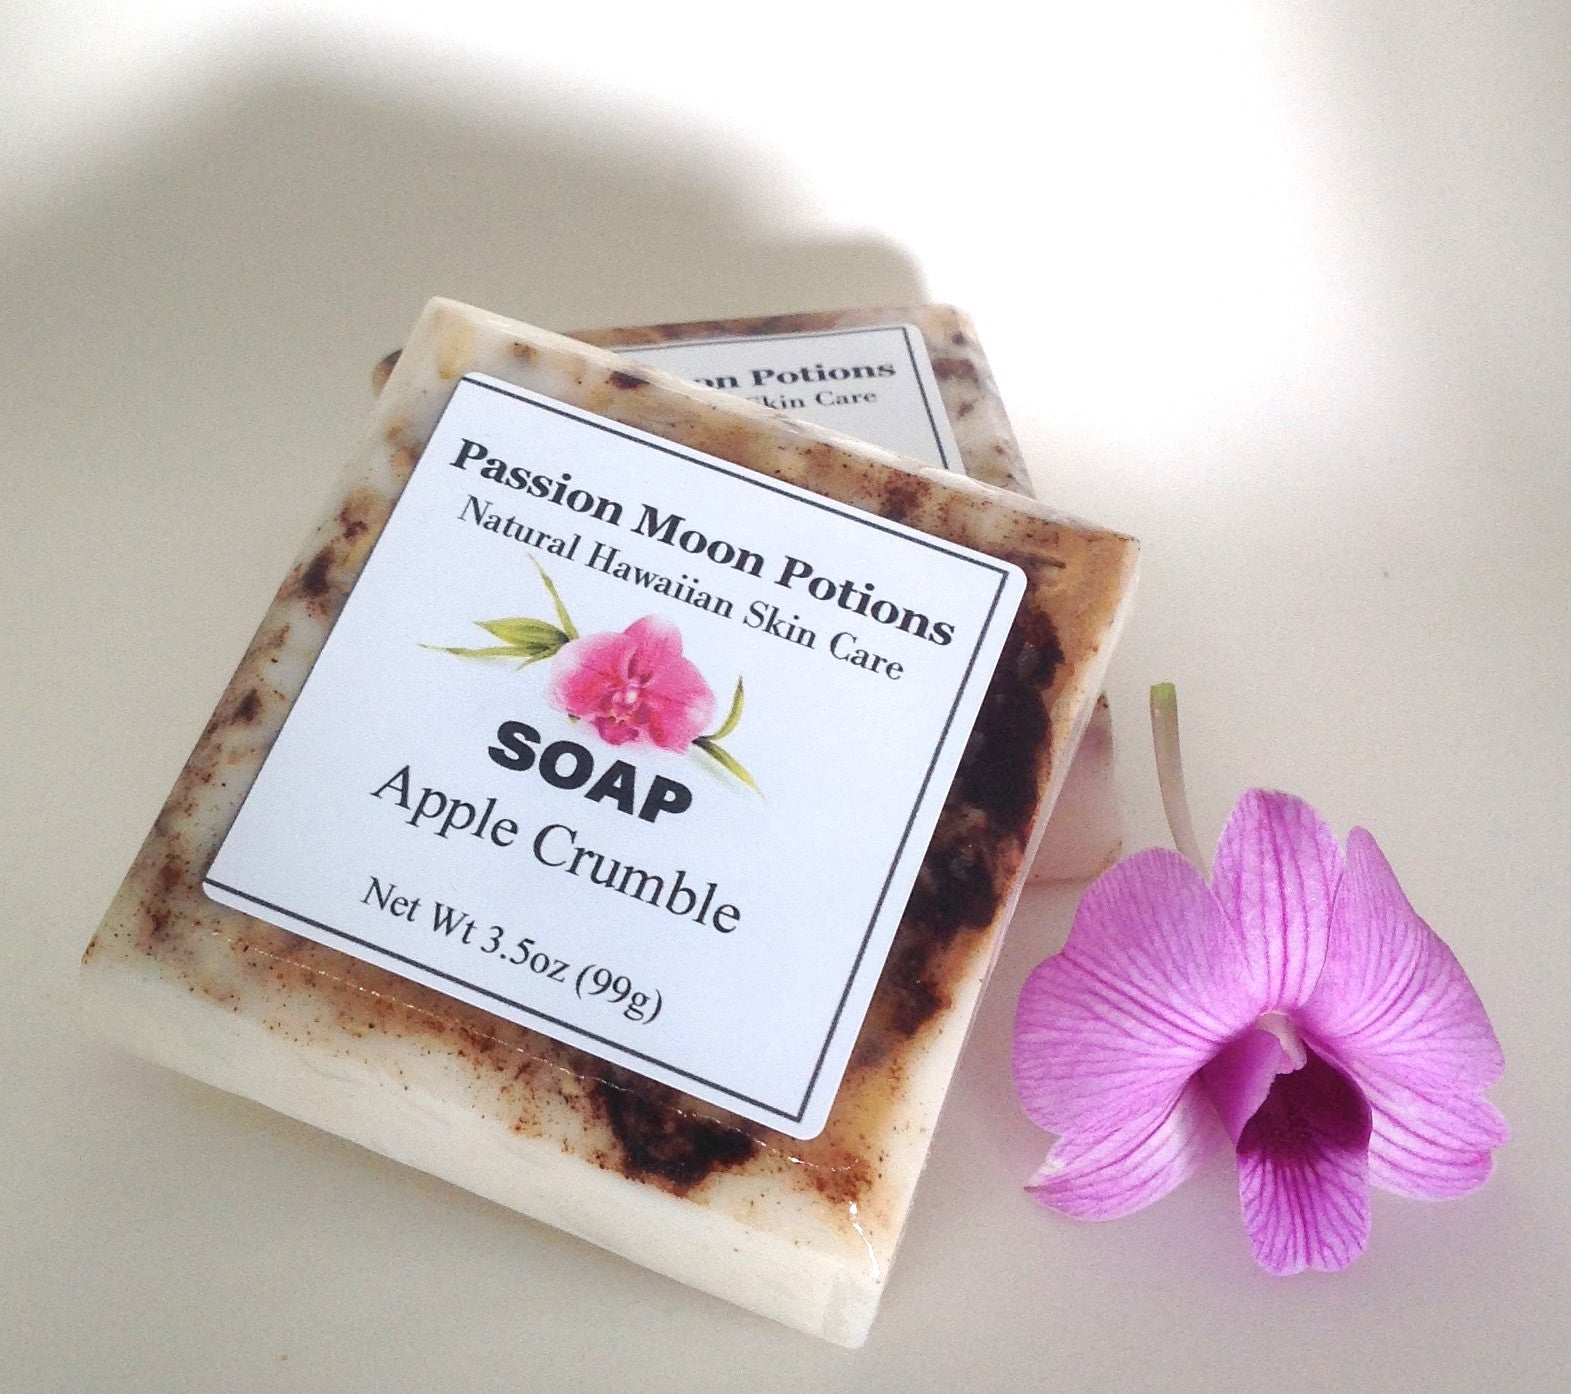 Apple Crumble Soap - Passion Moon Potions - 1